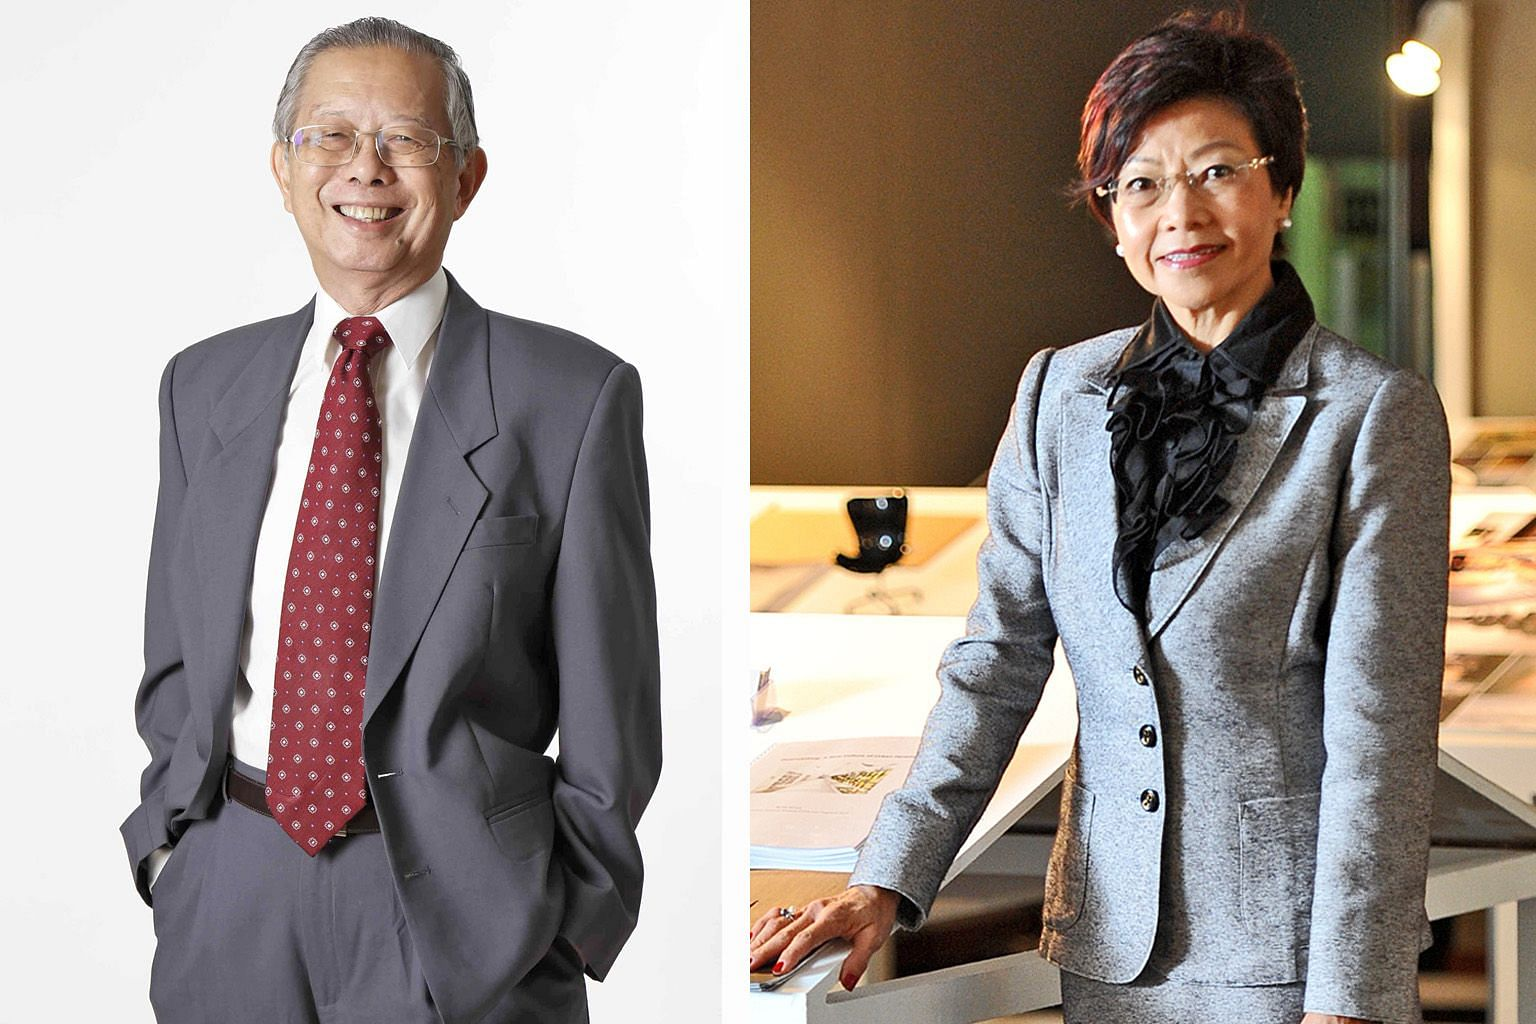 Professor Lim Siong Guan and Ms Low Sin Leng were part of the study team, whose members were mostly in their 20s and 30s.